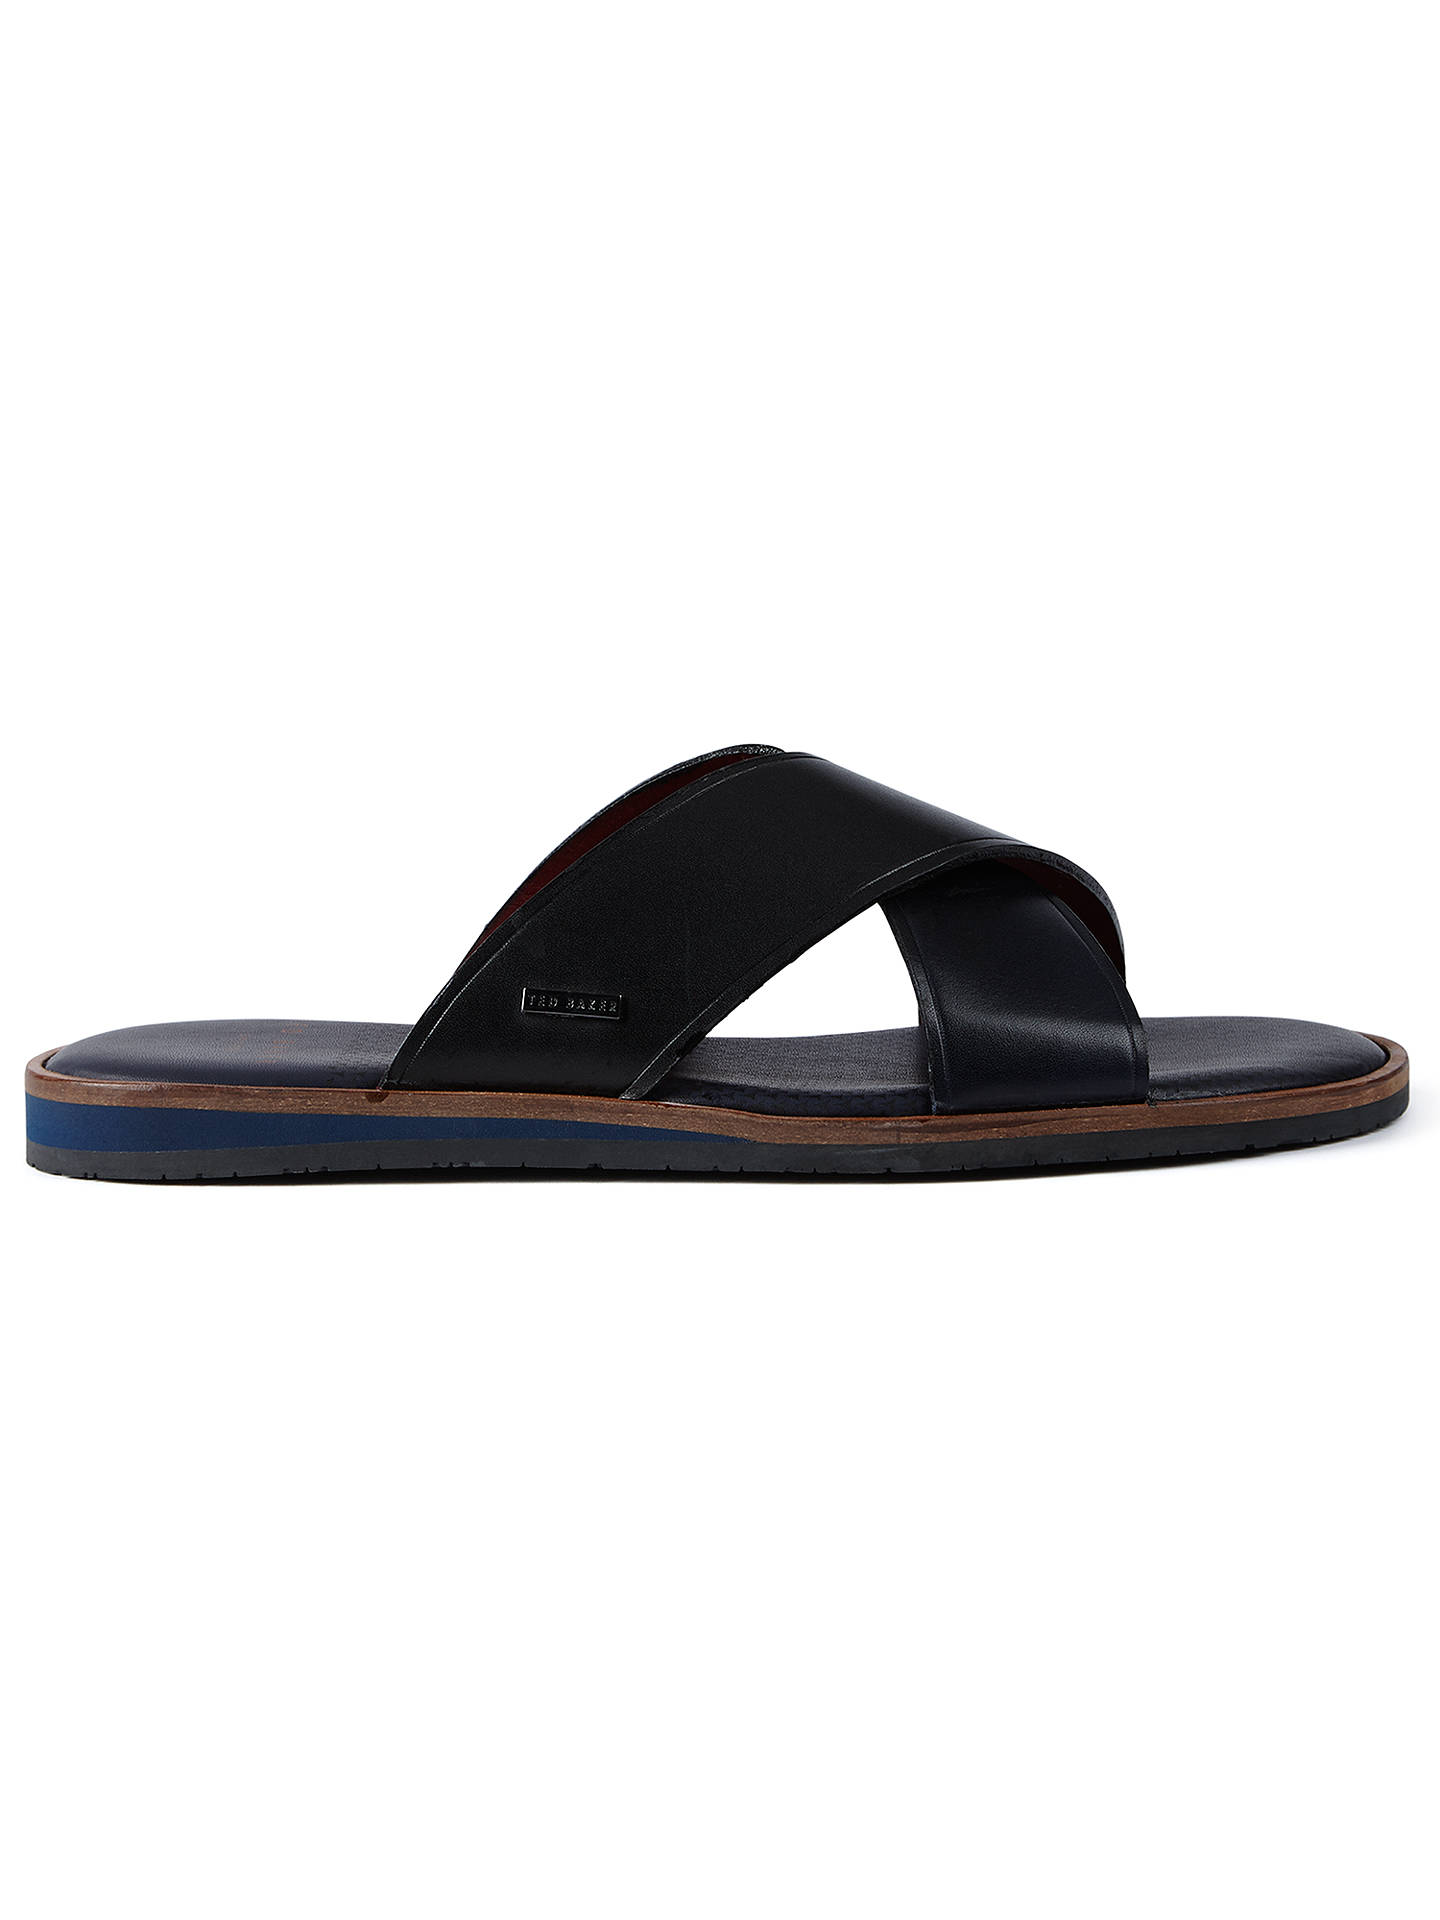 ca773bdee Ted Baker Punxel Sandals at John Lewis   Partners